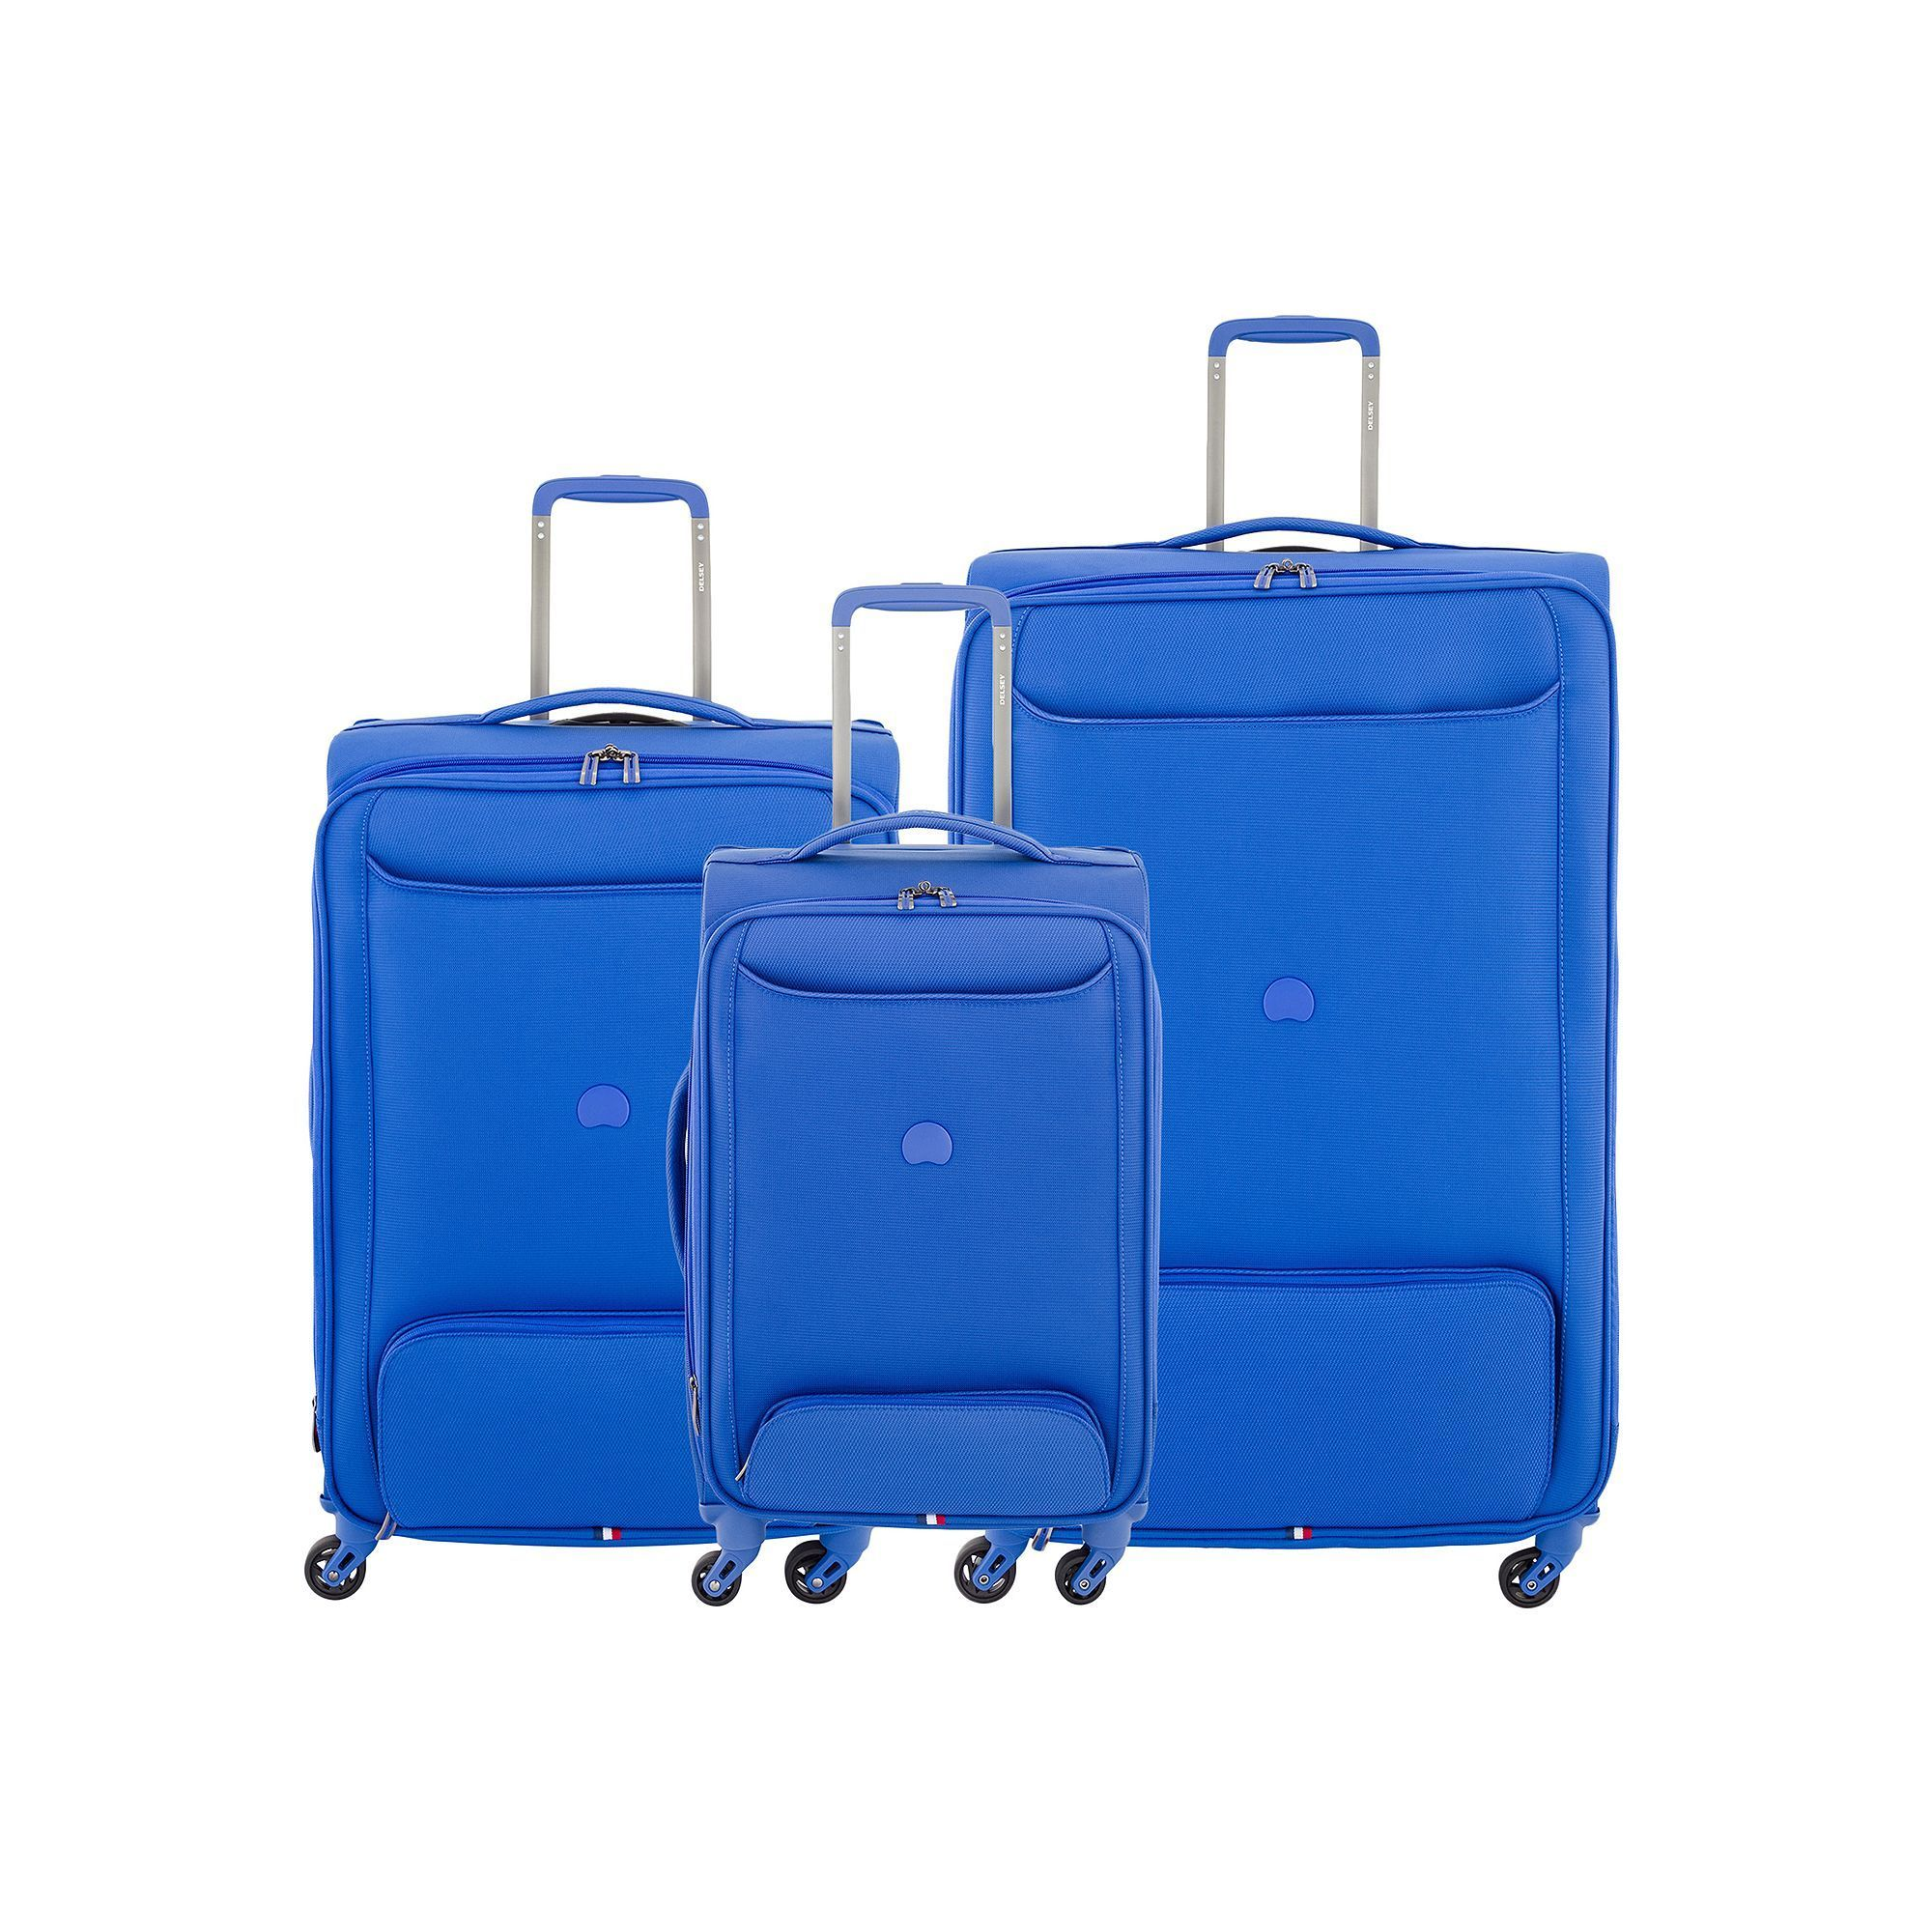 Delsey chatillon spinner trolley luggage luggage delsey